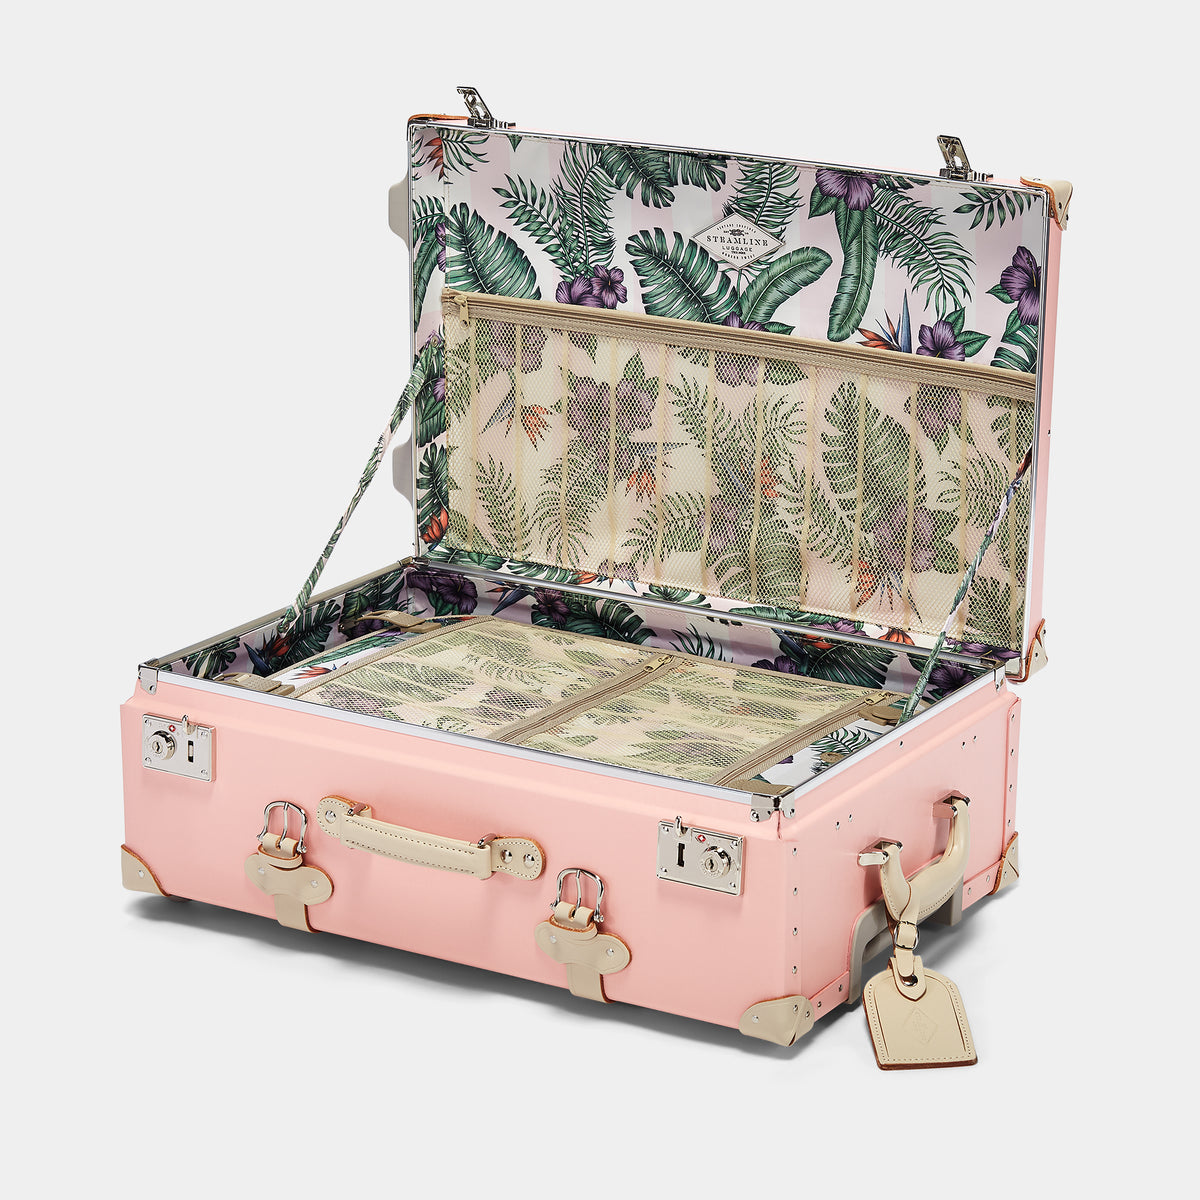 The Botanist Stowaway in Pink - Vintage-Inspired Suitcase - Interior